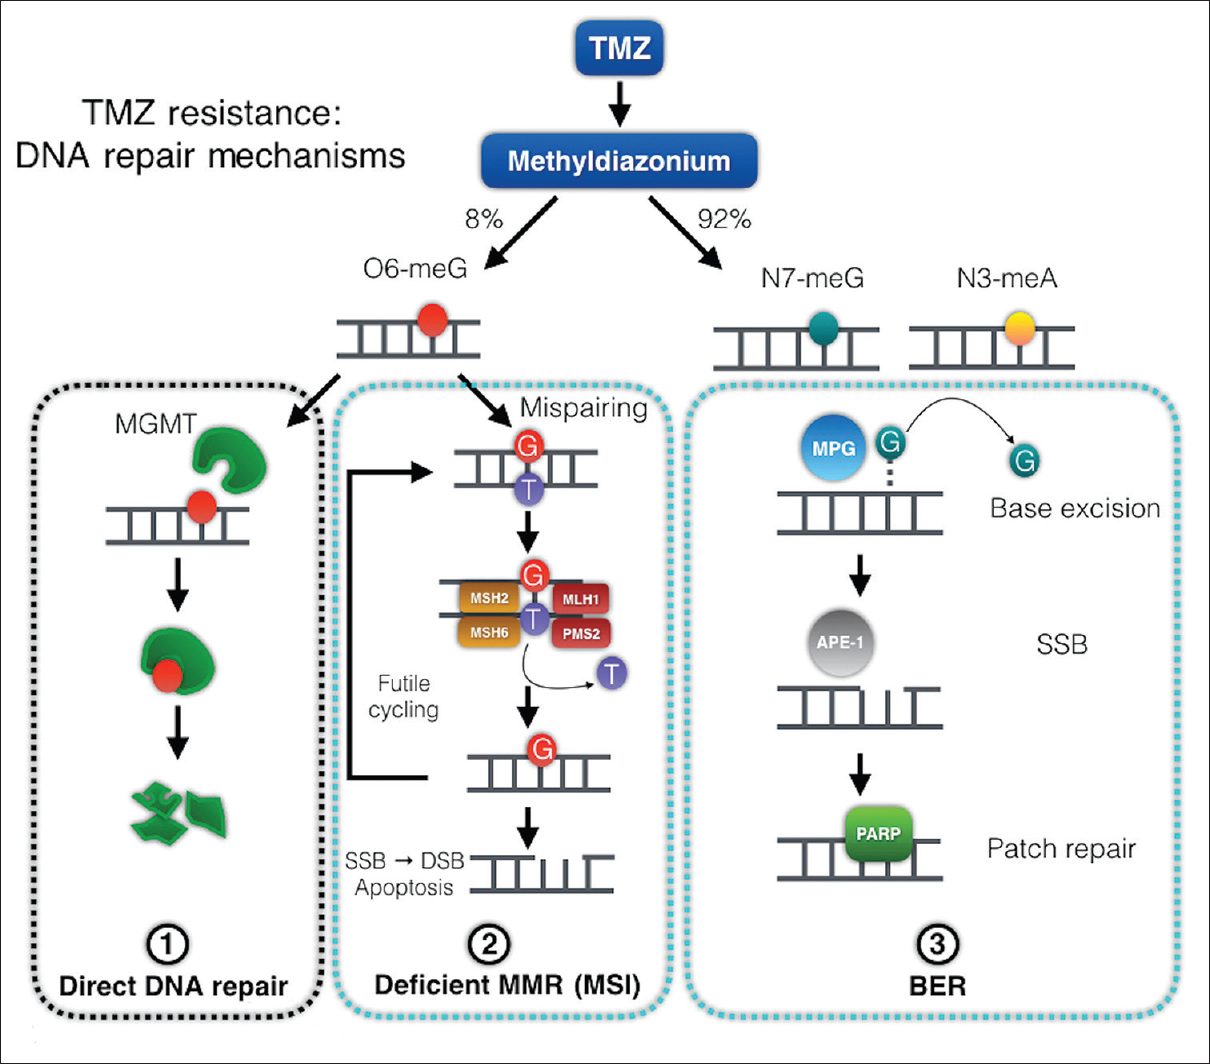 A multifaceted review of temozolomide resistance mechanisms in